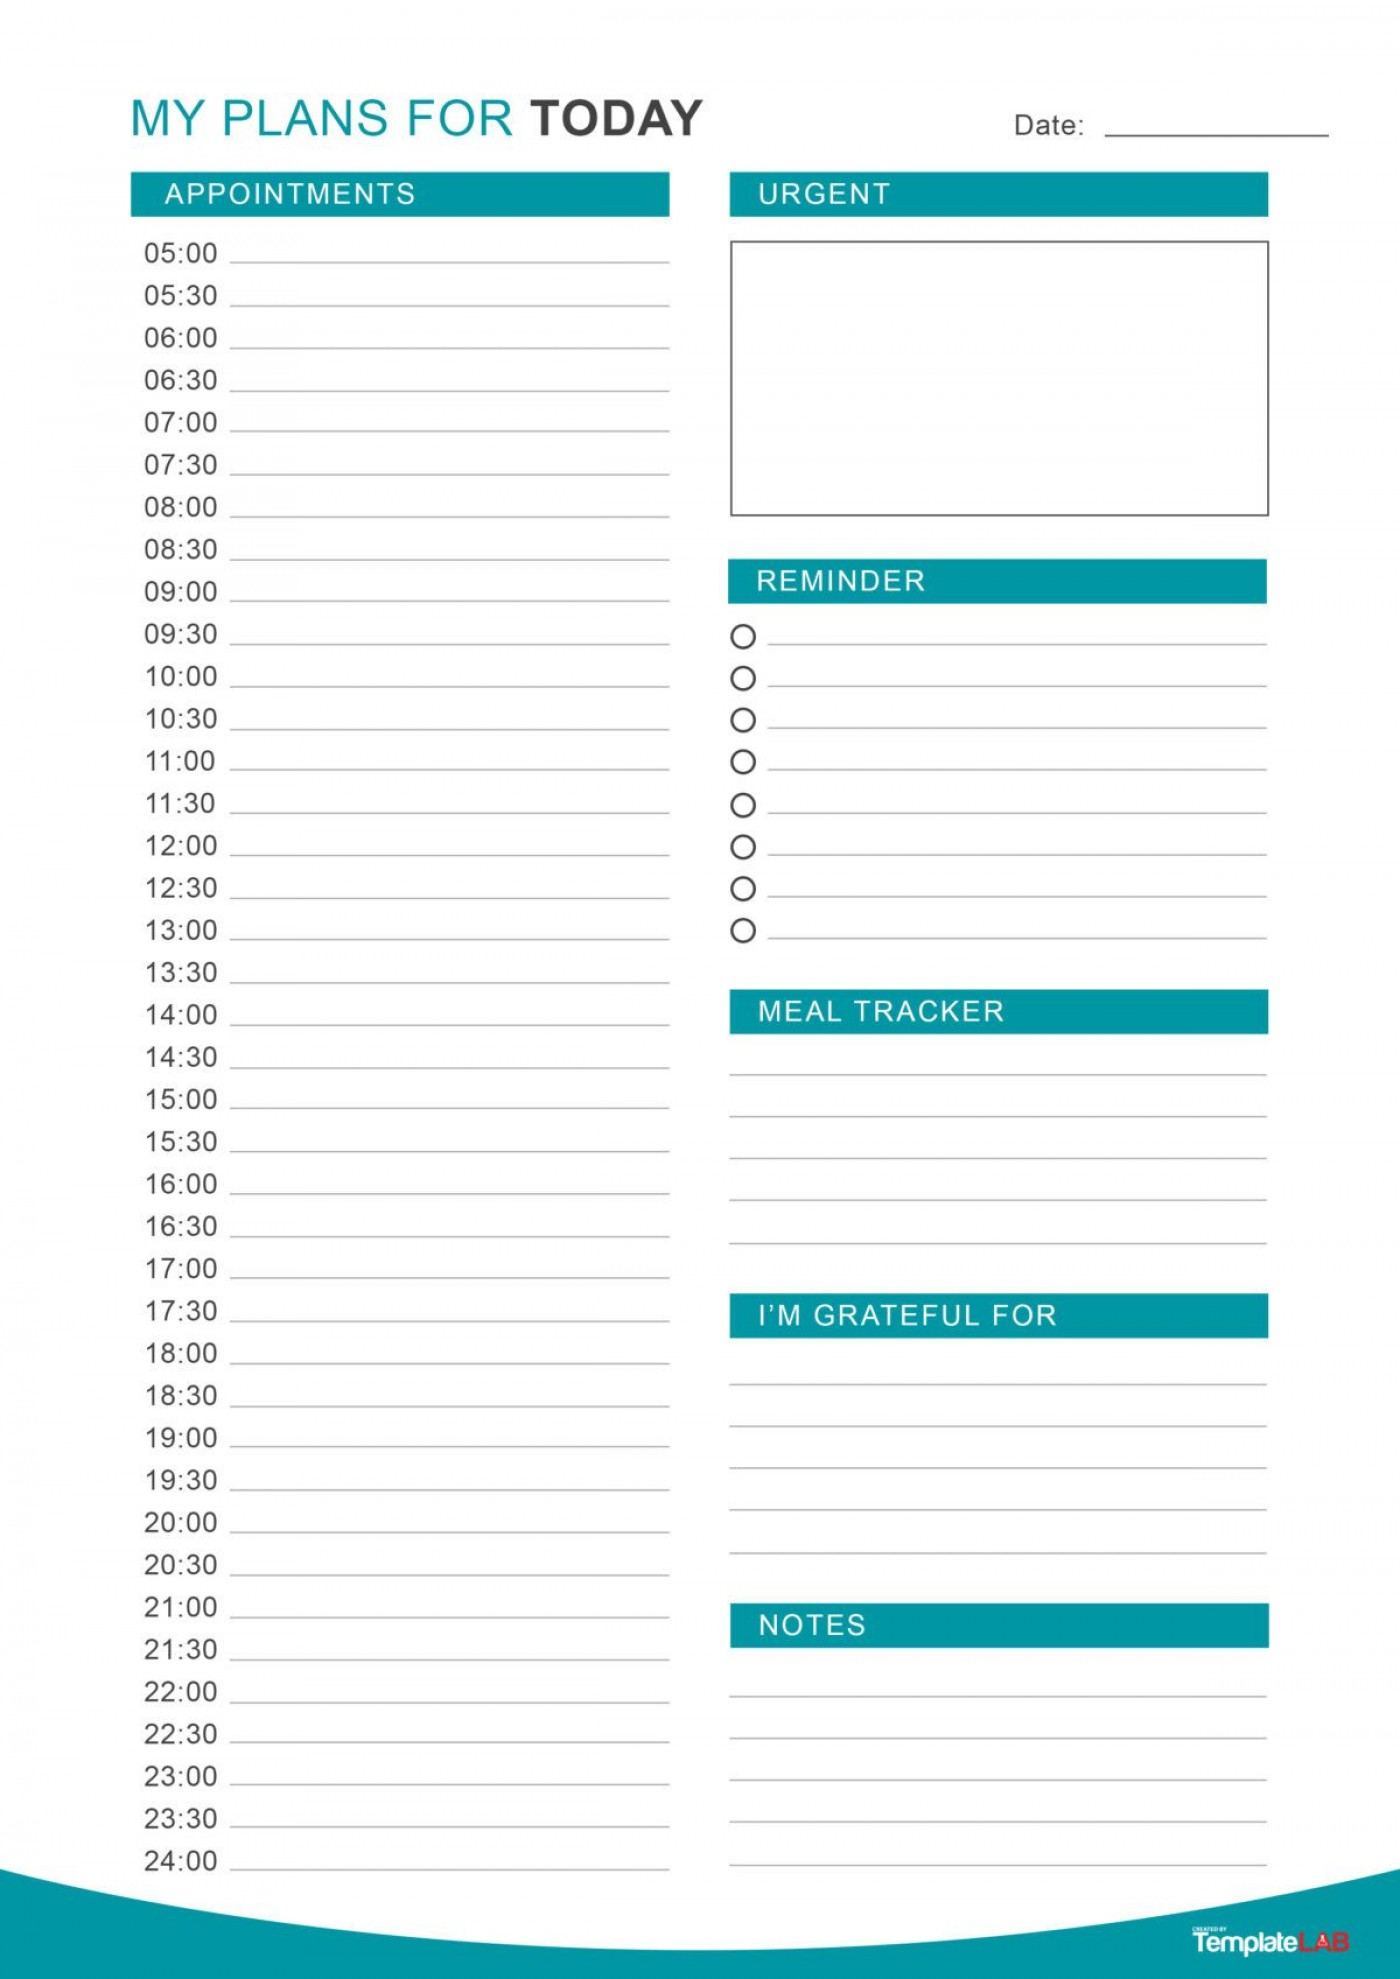 005 Surprising Printable Daily Schedule Template Inspiration 1400